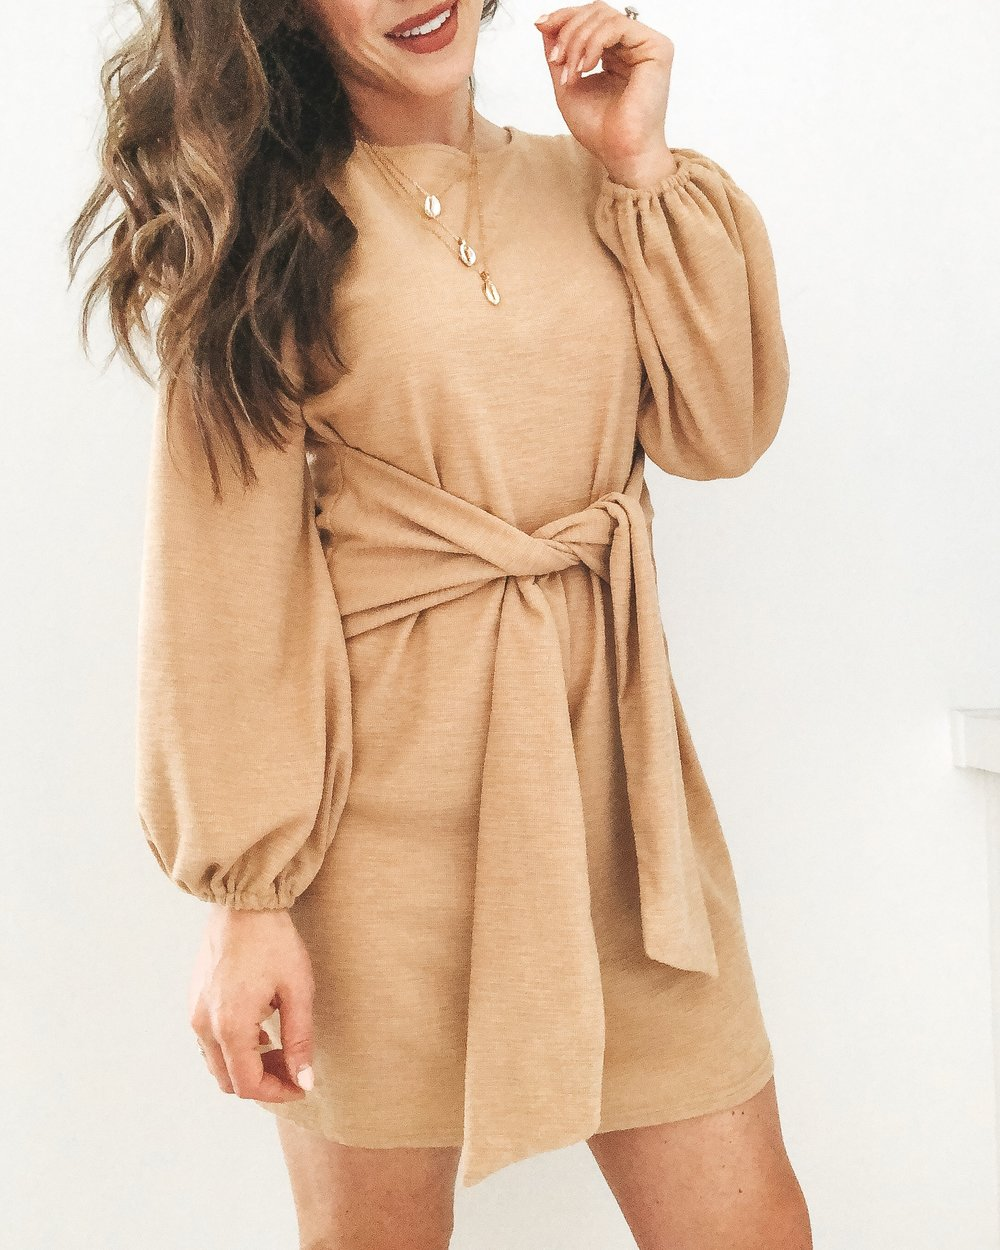 Amazon fashion finds.  Affordable fashion on Amazon.  Tan tie waist dress.  Cute shell necklace.